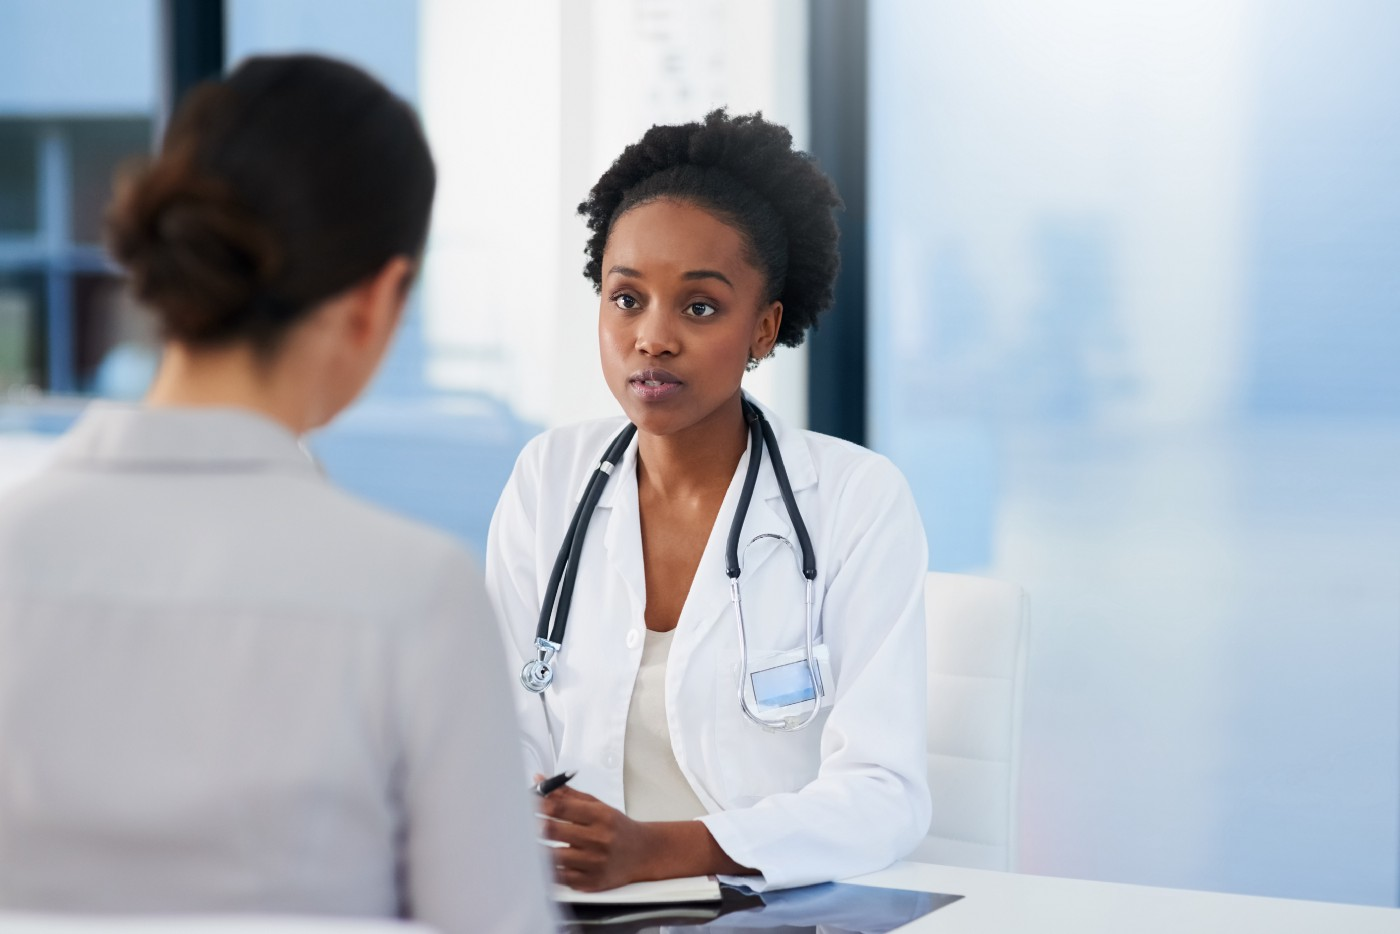 A cropped shot of a doctor, who is a woman of color, talking to a patient in her office.